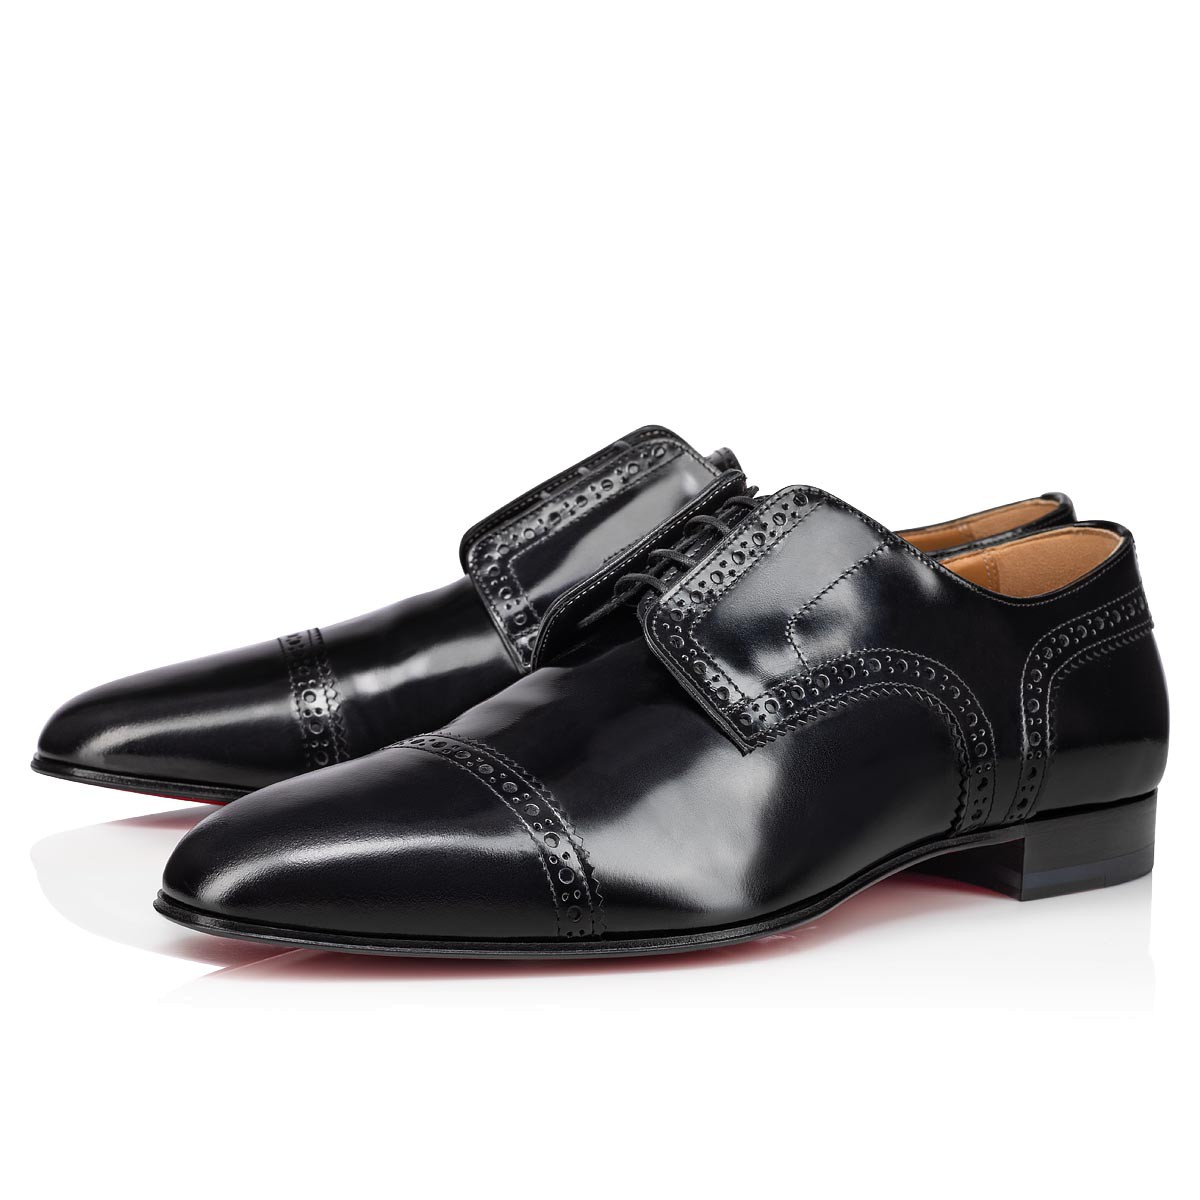 Shoes - Curry Flat - Christian Louboutin